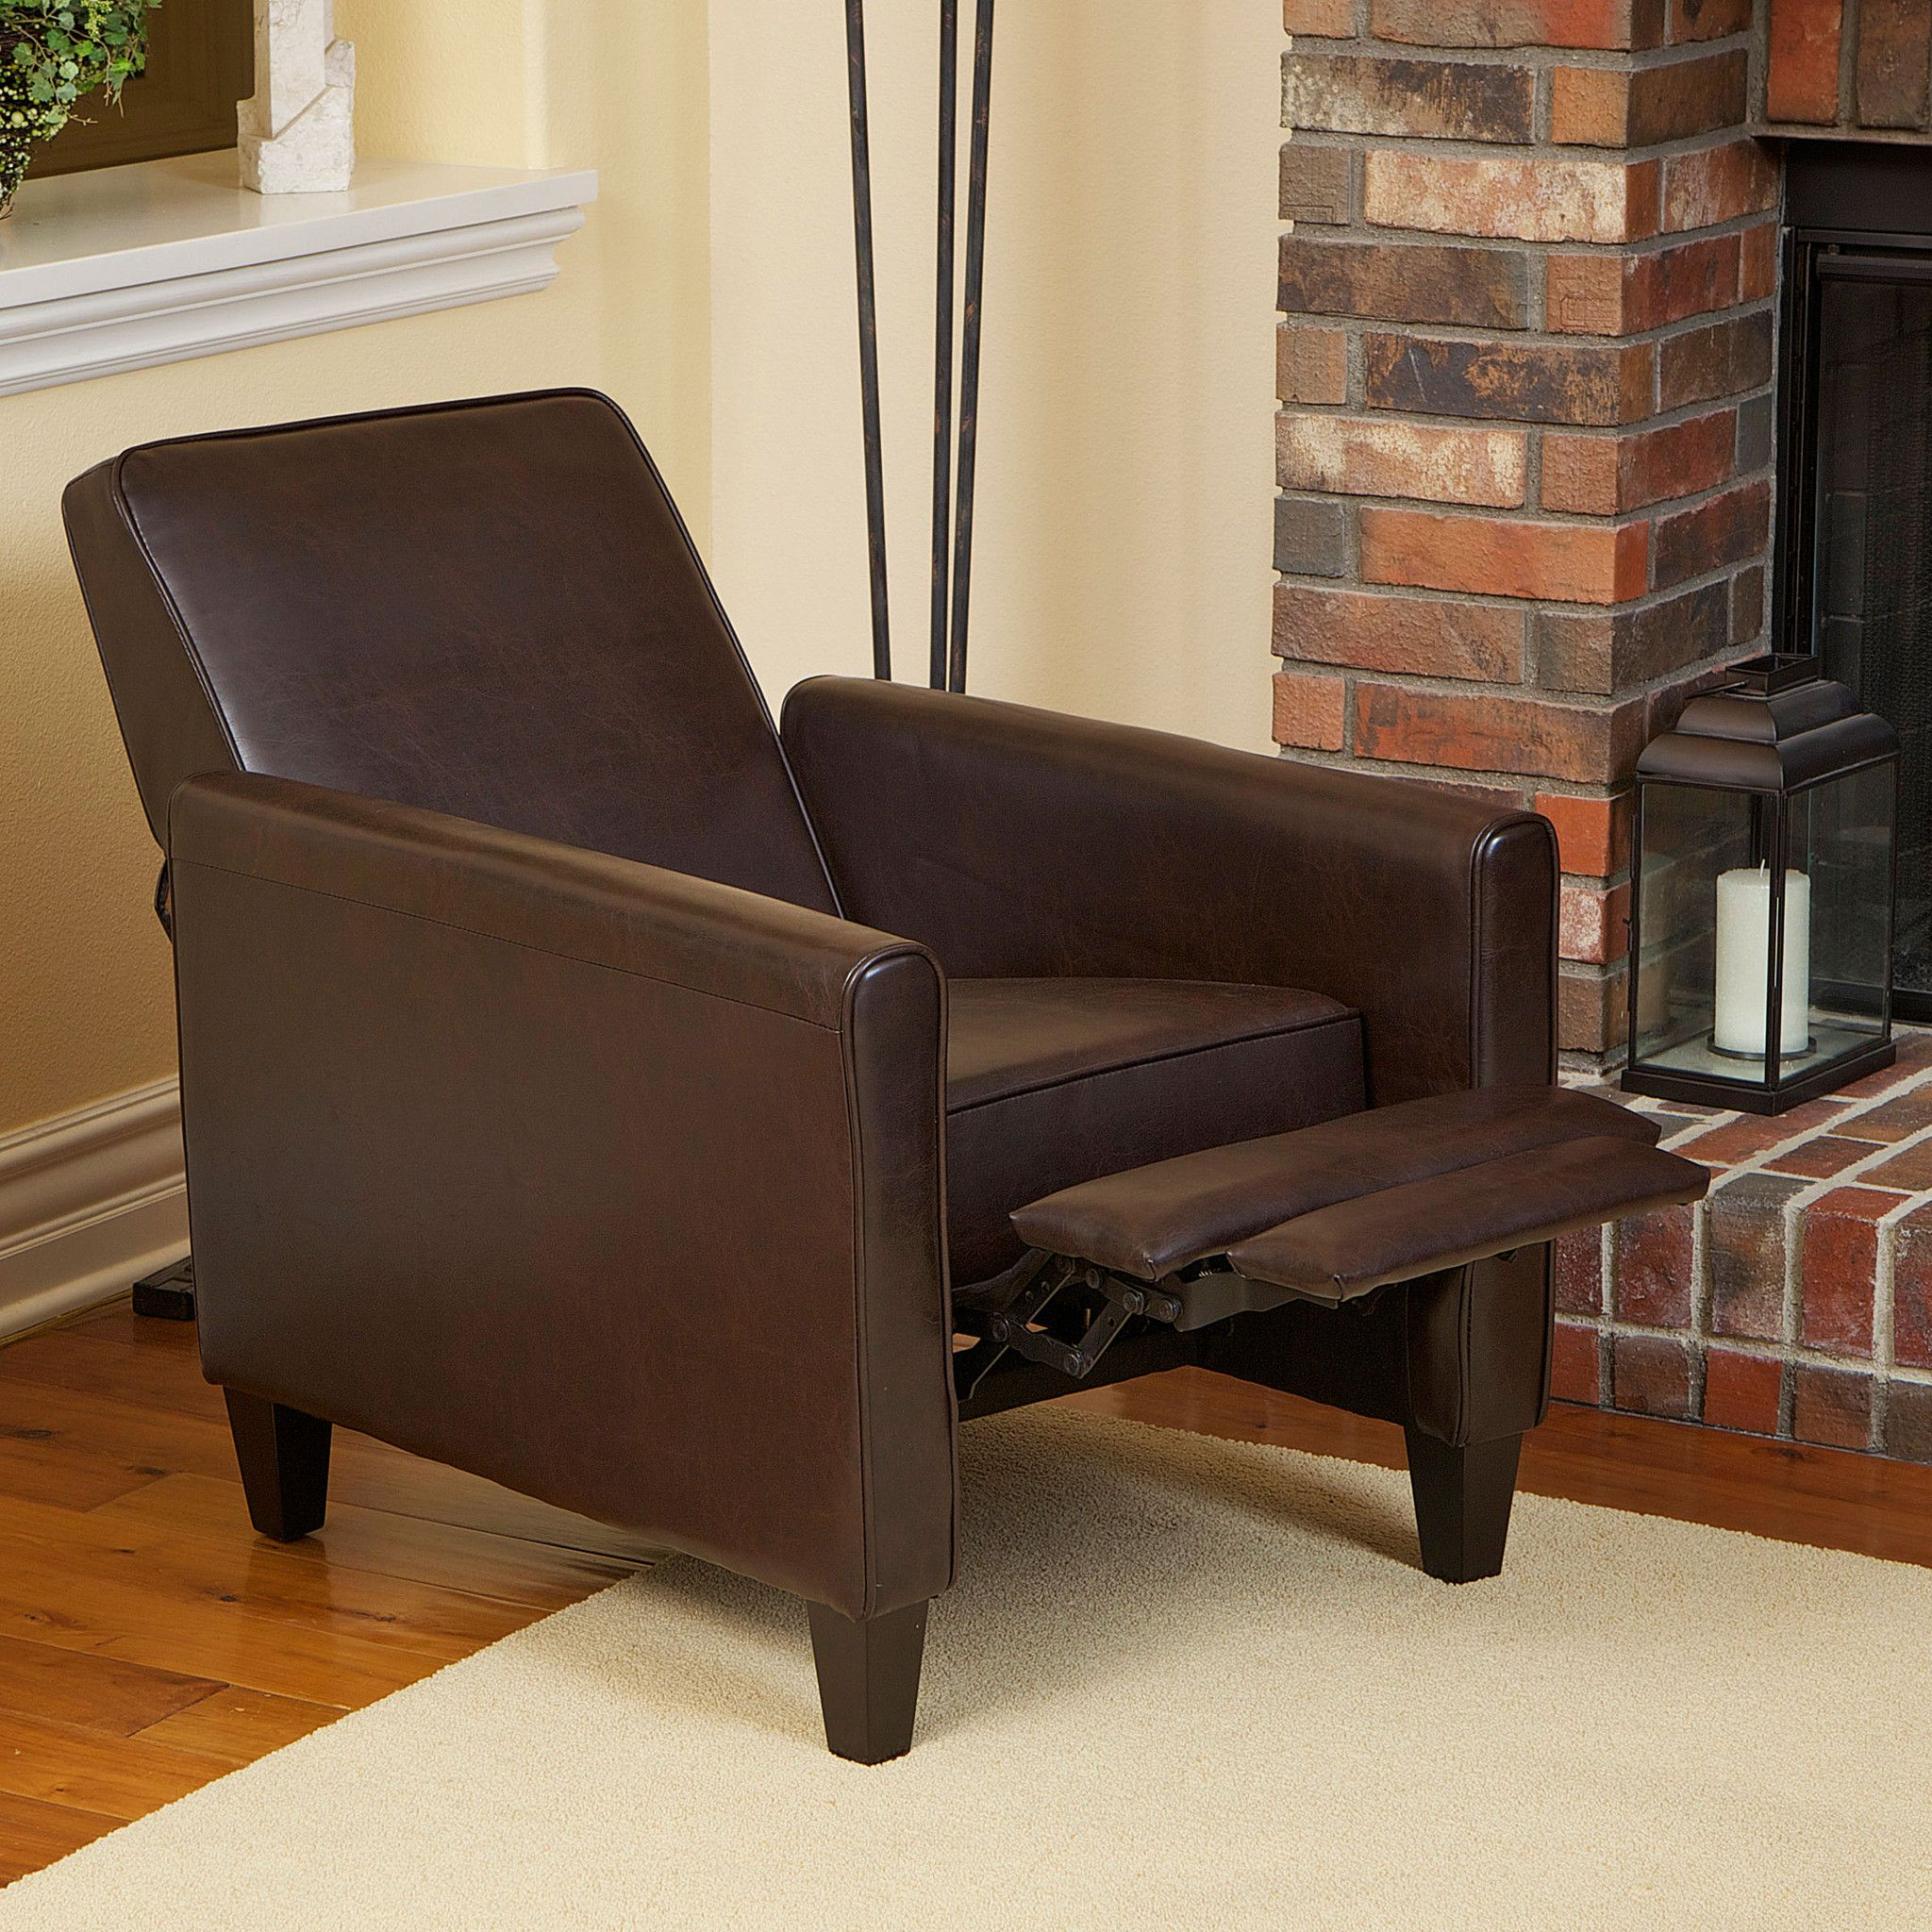 Chairs Leather Club Chair Recliner Armchairs For Sale Bassett Chairs Reclining Wingback Swivel Crate And Barrel M Club Chairs Furniture Small Recliner Chairs